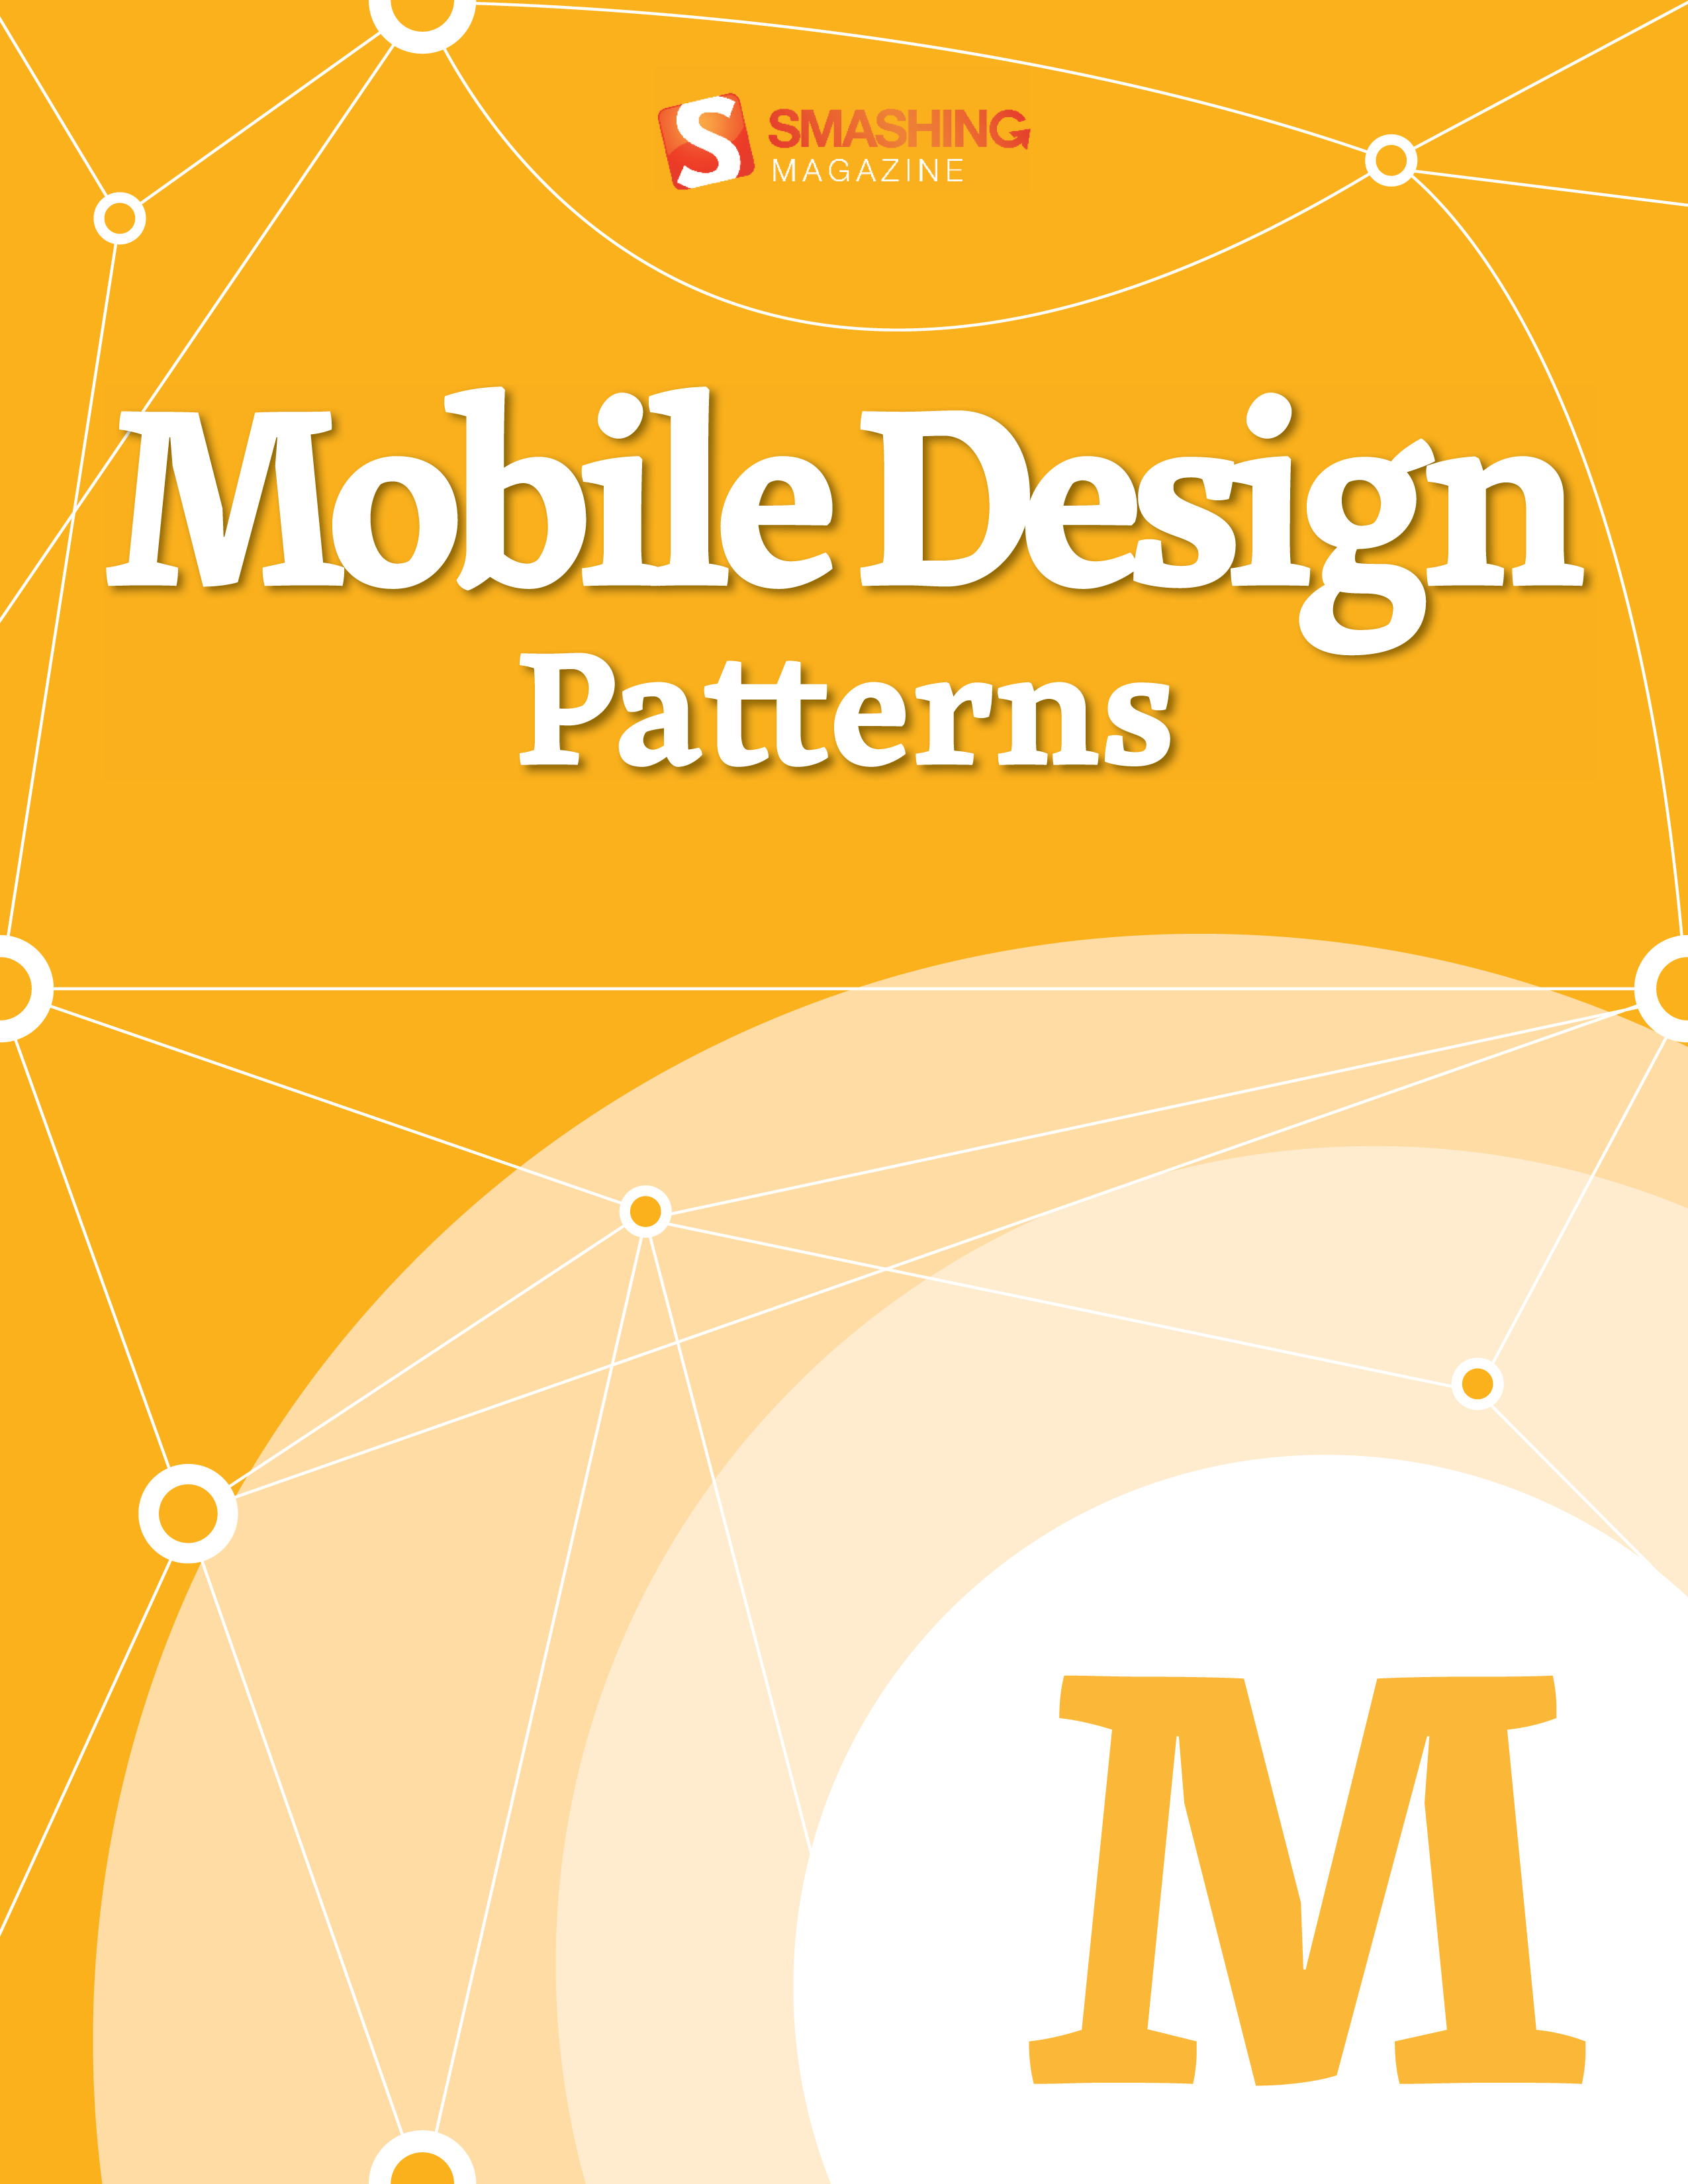 Mobile Design Patterns By: Smashing Magazine